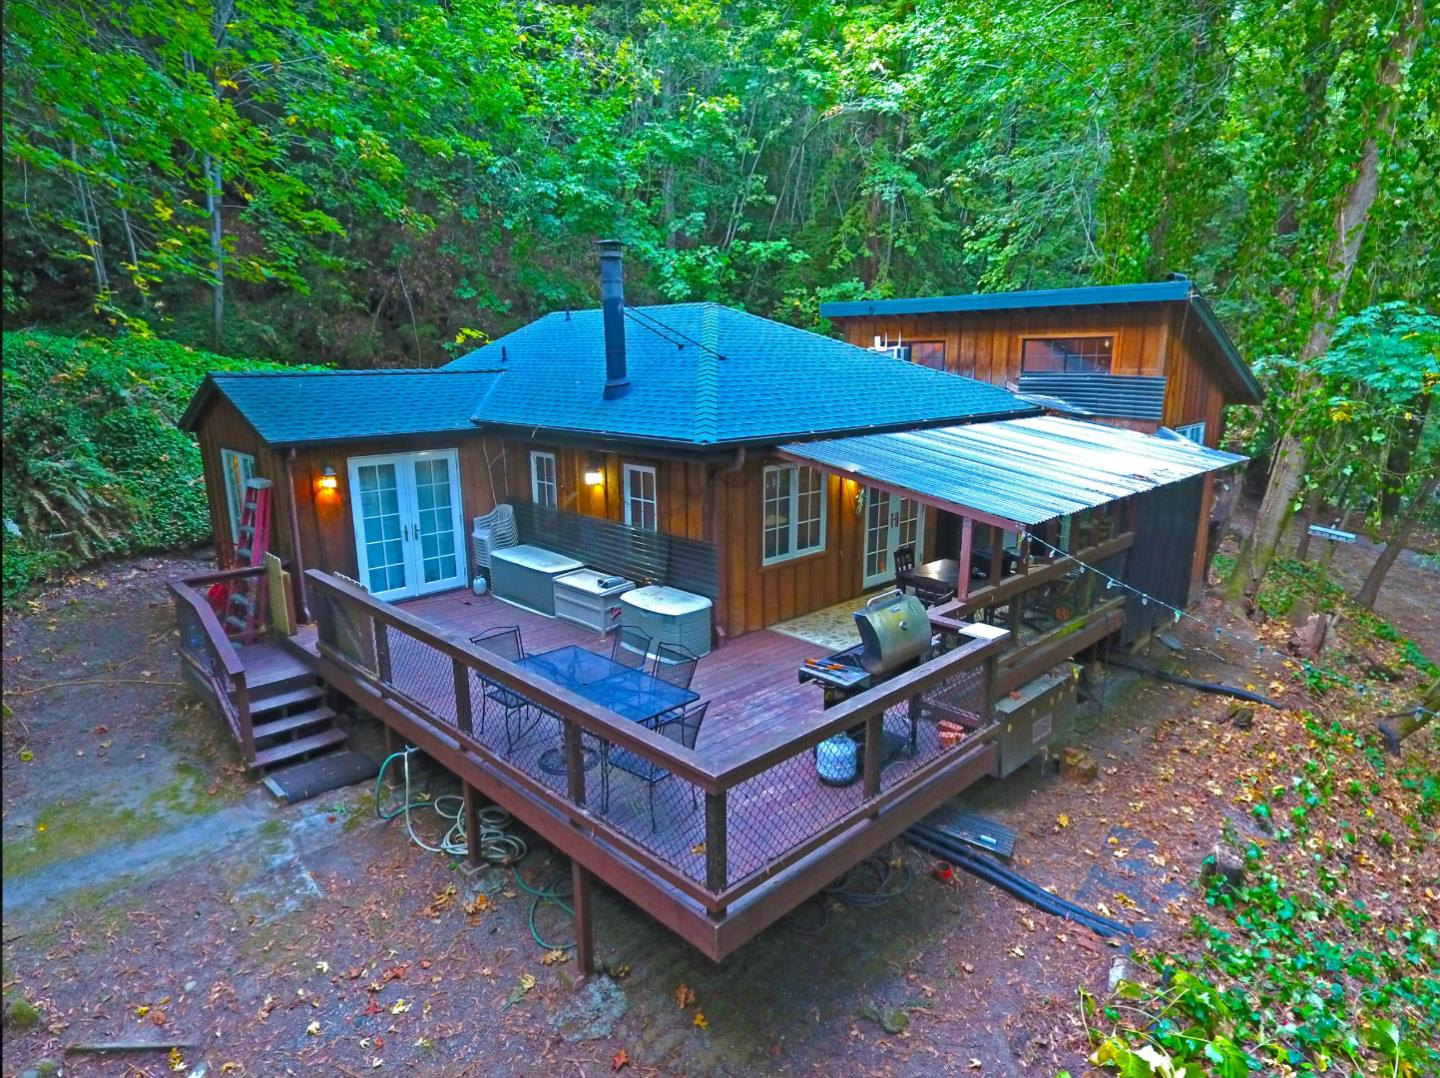 Quality Craftsman Creekside Abode, situated on a magical woodland setting, just 4.5 miles from the Corralitos Market accessed by 2-lane paved road the whole way there. This beautifully constructed home features modern kitchen, vaulted open beam ceilings and high-grade vertical grain Doug fir and redwood components throughout. Accessed by a footbridge over Corralitos Creek to transport you to an enchanting environment of tranquility. Includes water rights to the creek plus a functioning Artesian well, with storage tank. Vehicle access is via seasonal creek crossing 11 months out of the year, with daily access via footbridge that crosses the creek from the parking area on Eureka Canyon. A very special property tucked away in the hills!